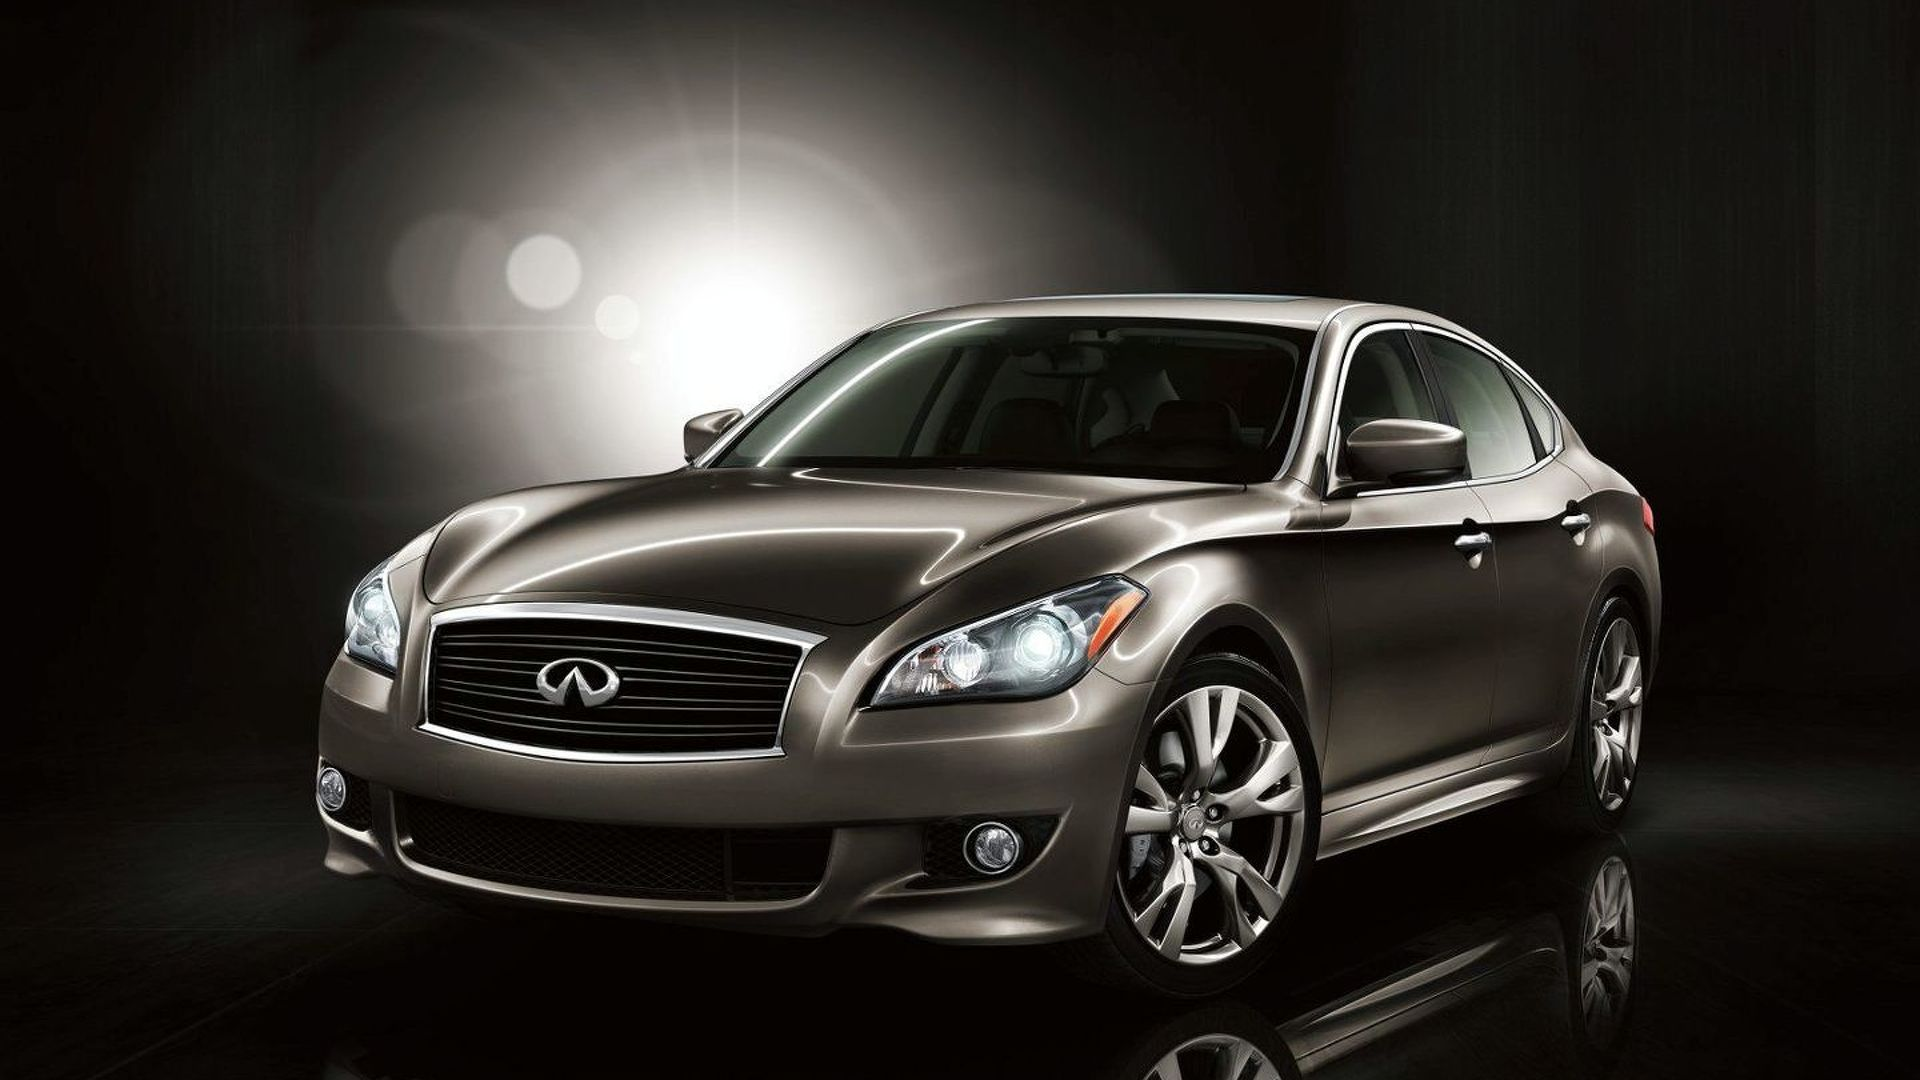 Infiniti preparing to phase out V8 engines?